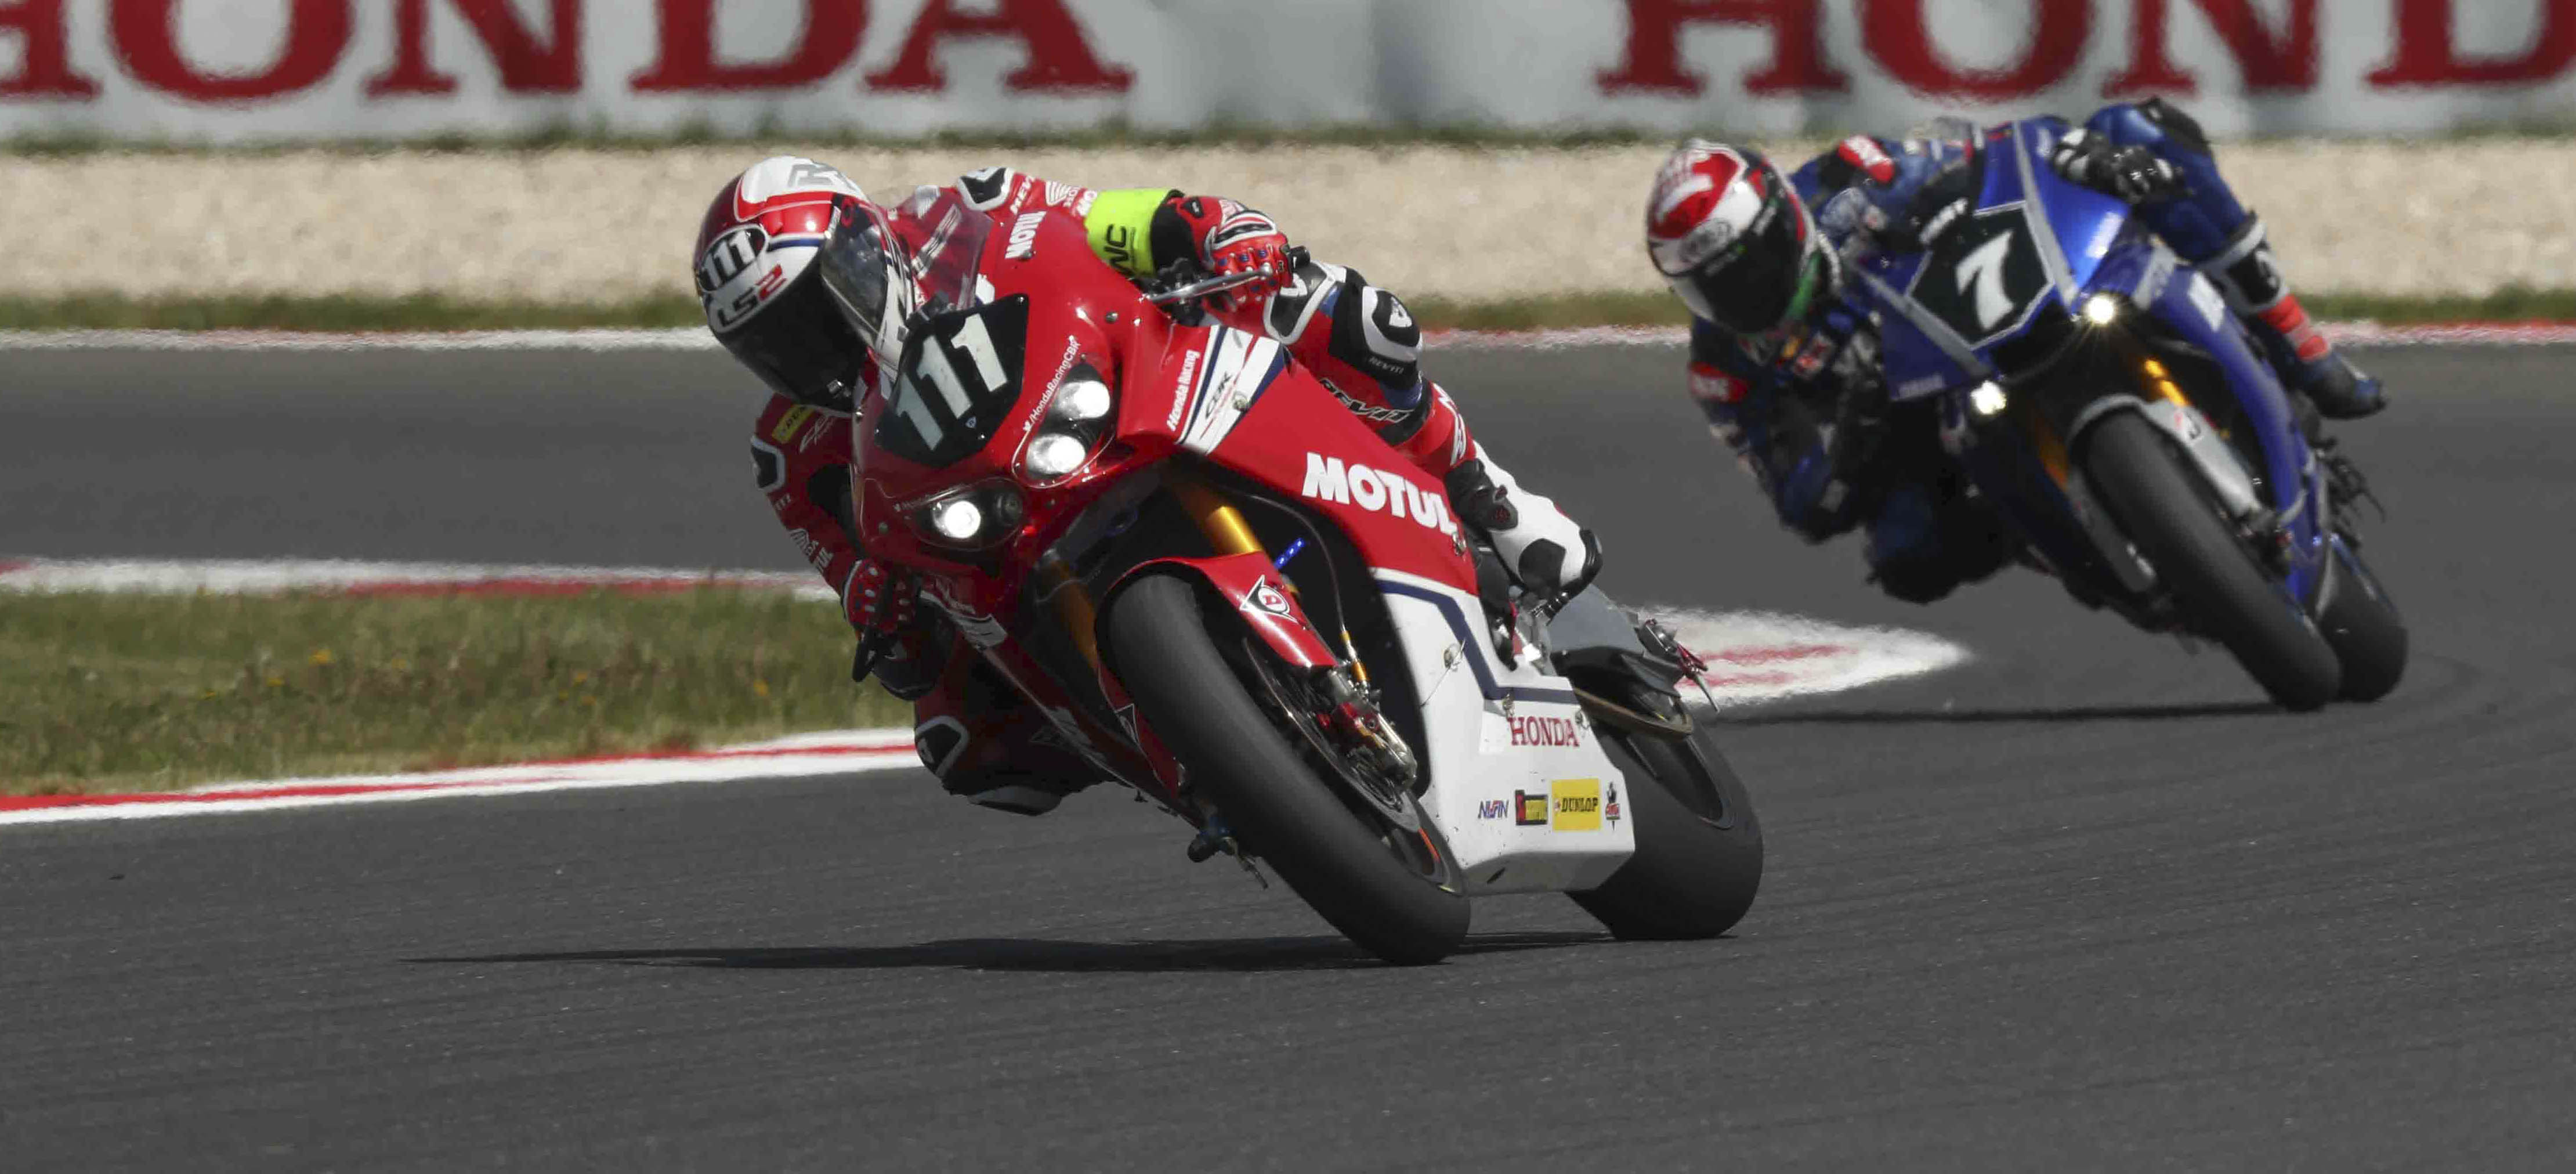 Honda Endurance Racing in the lead on the Slovakia Ring